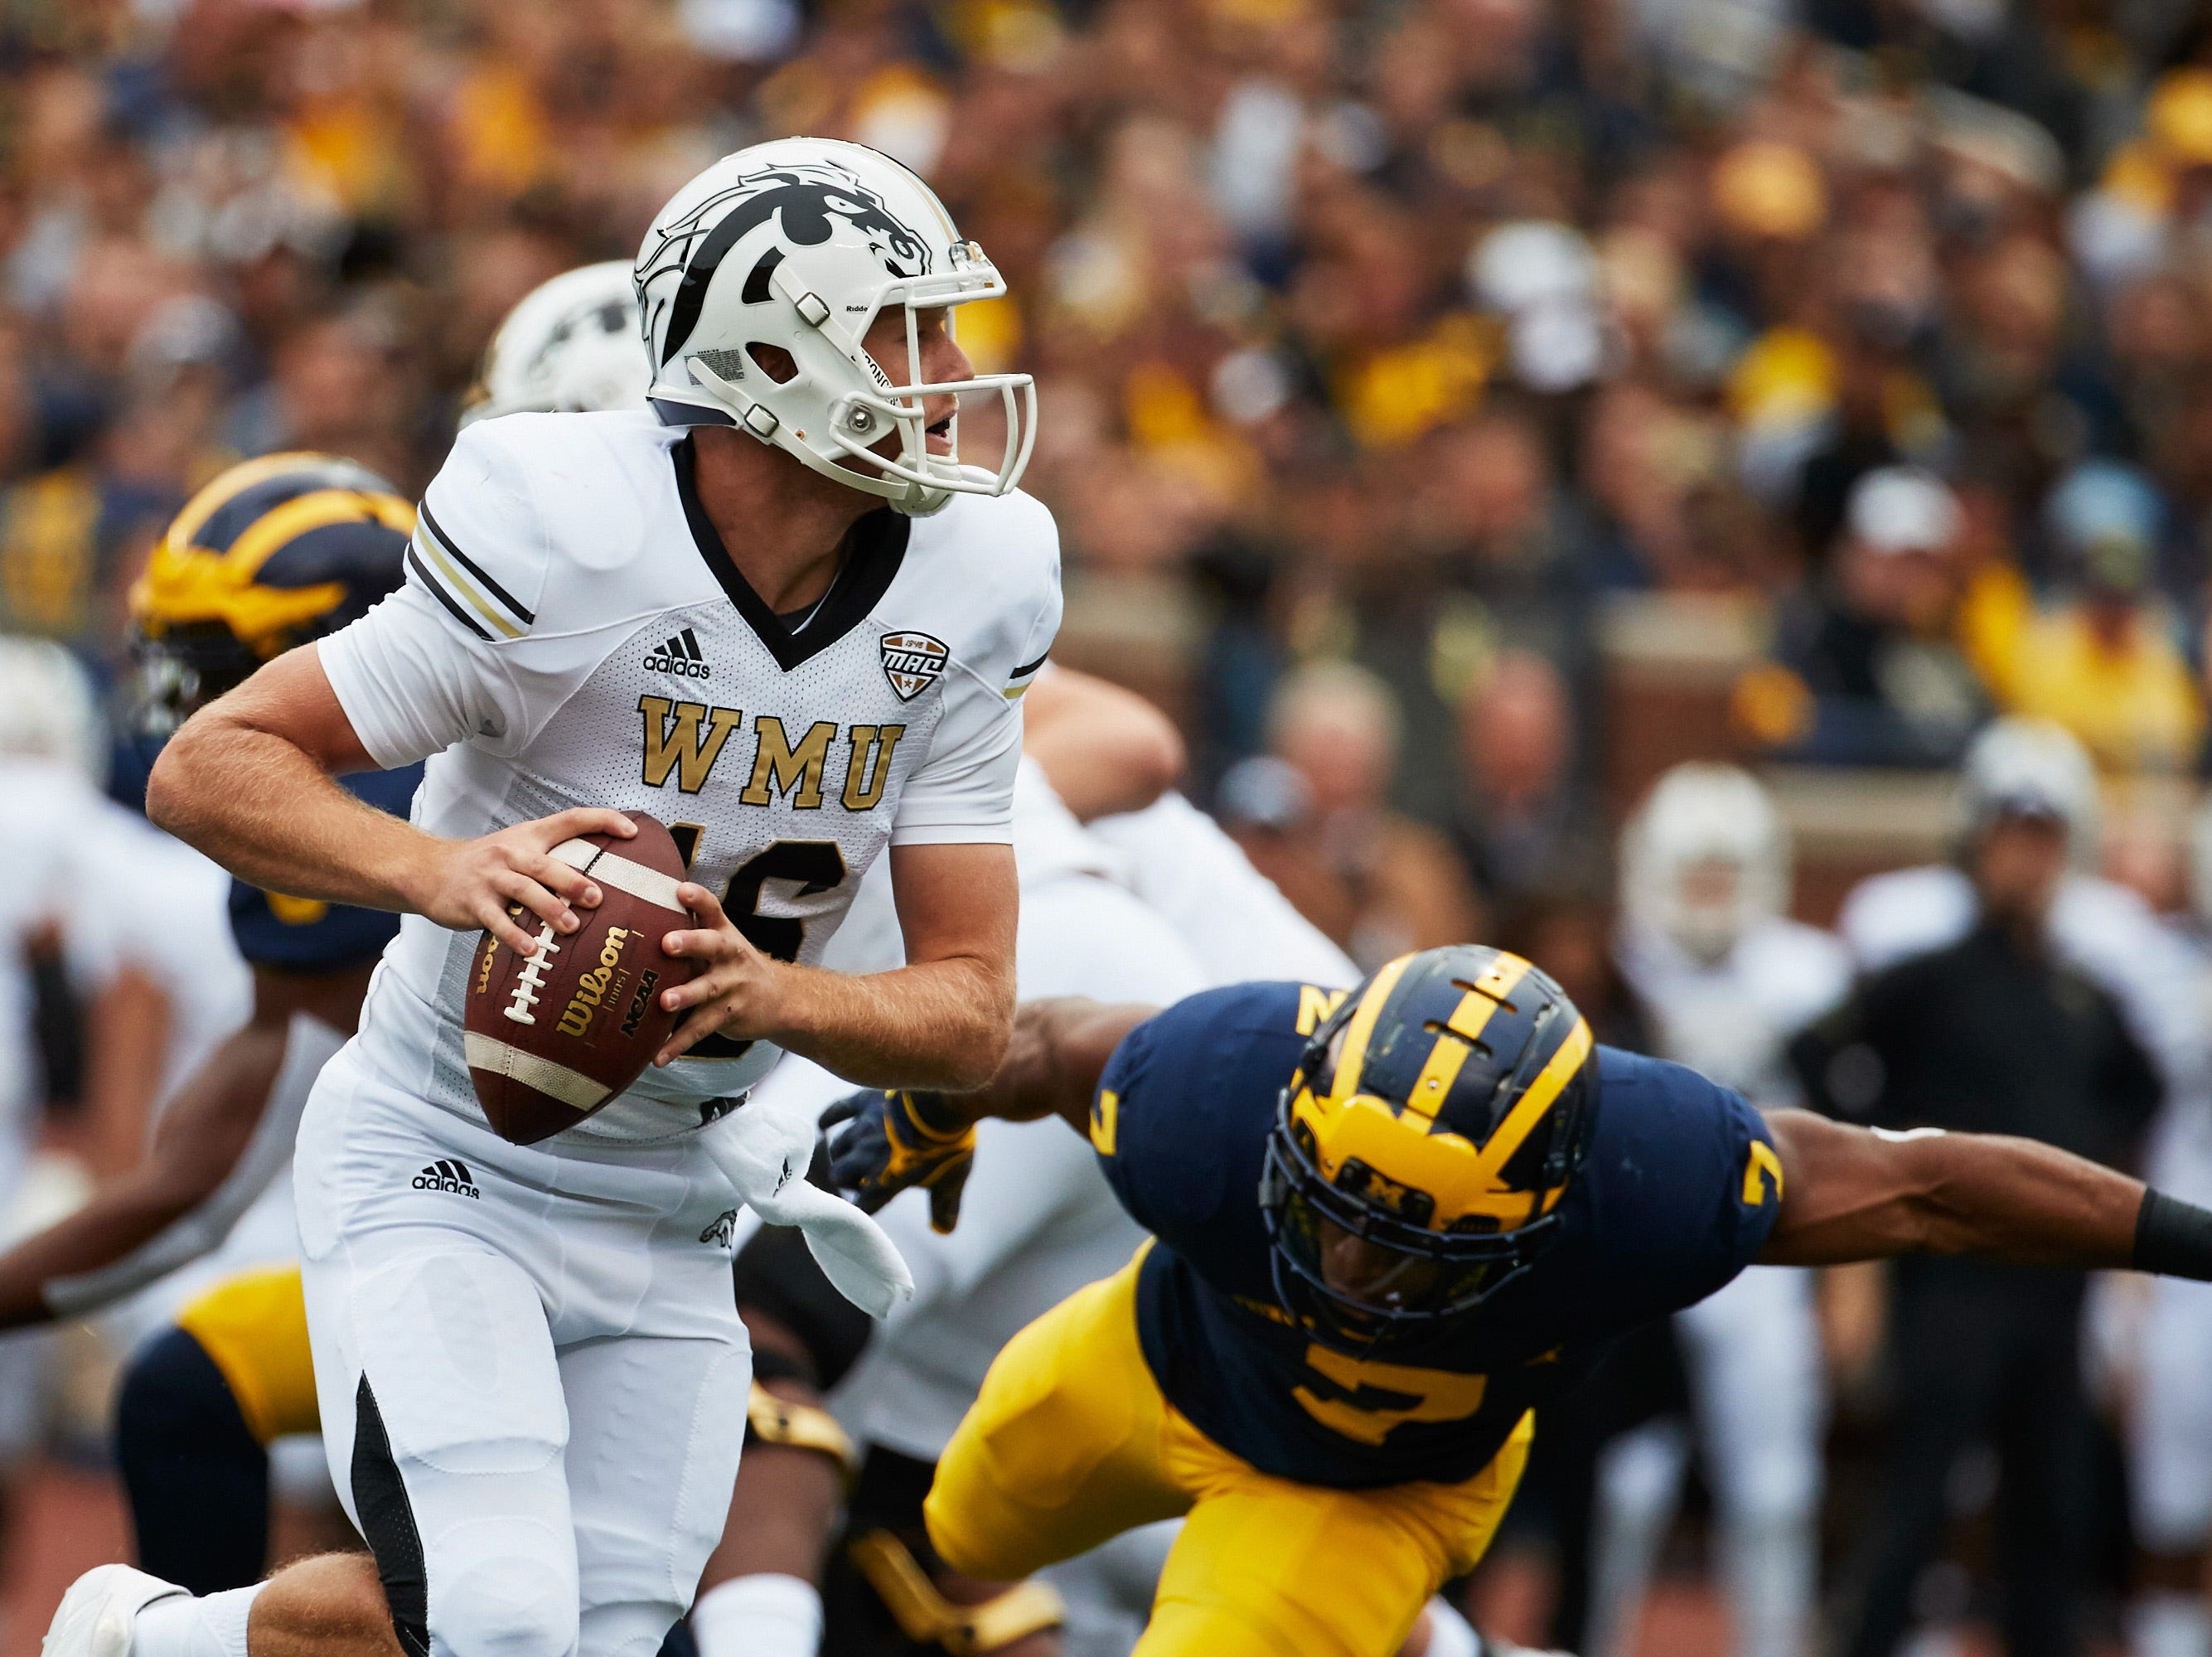 Sep 8, 2018; Ann Arbor, MI, USA; Western Michigan Broncos quarterback Jon Wassink (16) scramble on Michigan Wolverines linebacker Khaleke Hudson (7) in the first half at Michigan Stadium. Mandatory Credit: Rick Osentoski-USA TODAY Sports